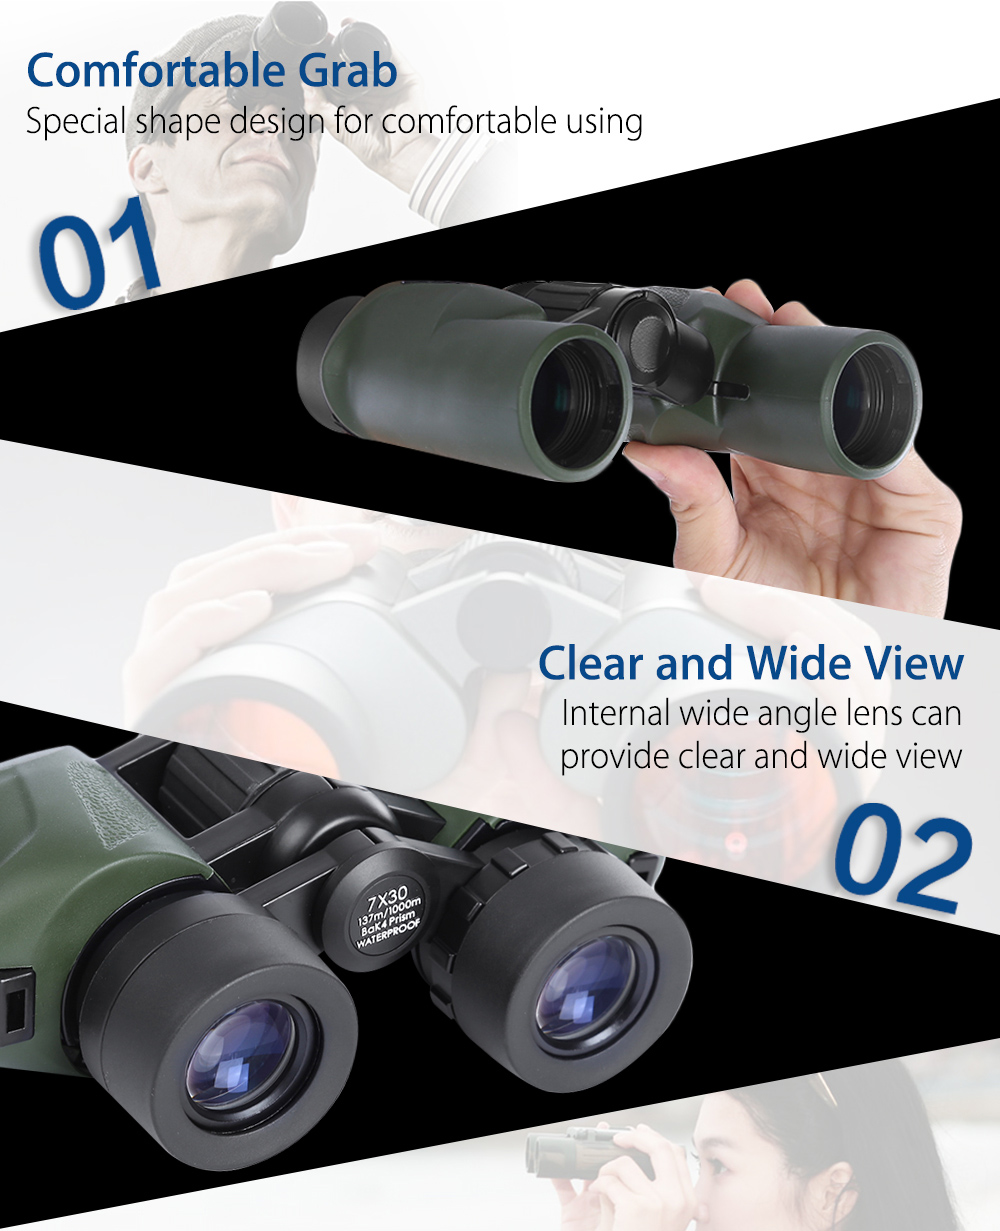 Comet AX11 - 730 Multifunction Zoom Metal Collapsible Binocular High-definition Telescope